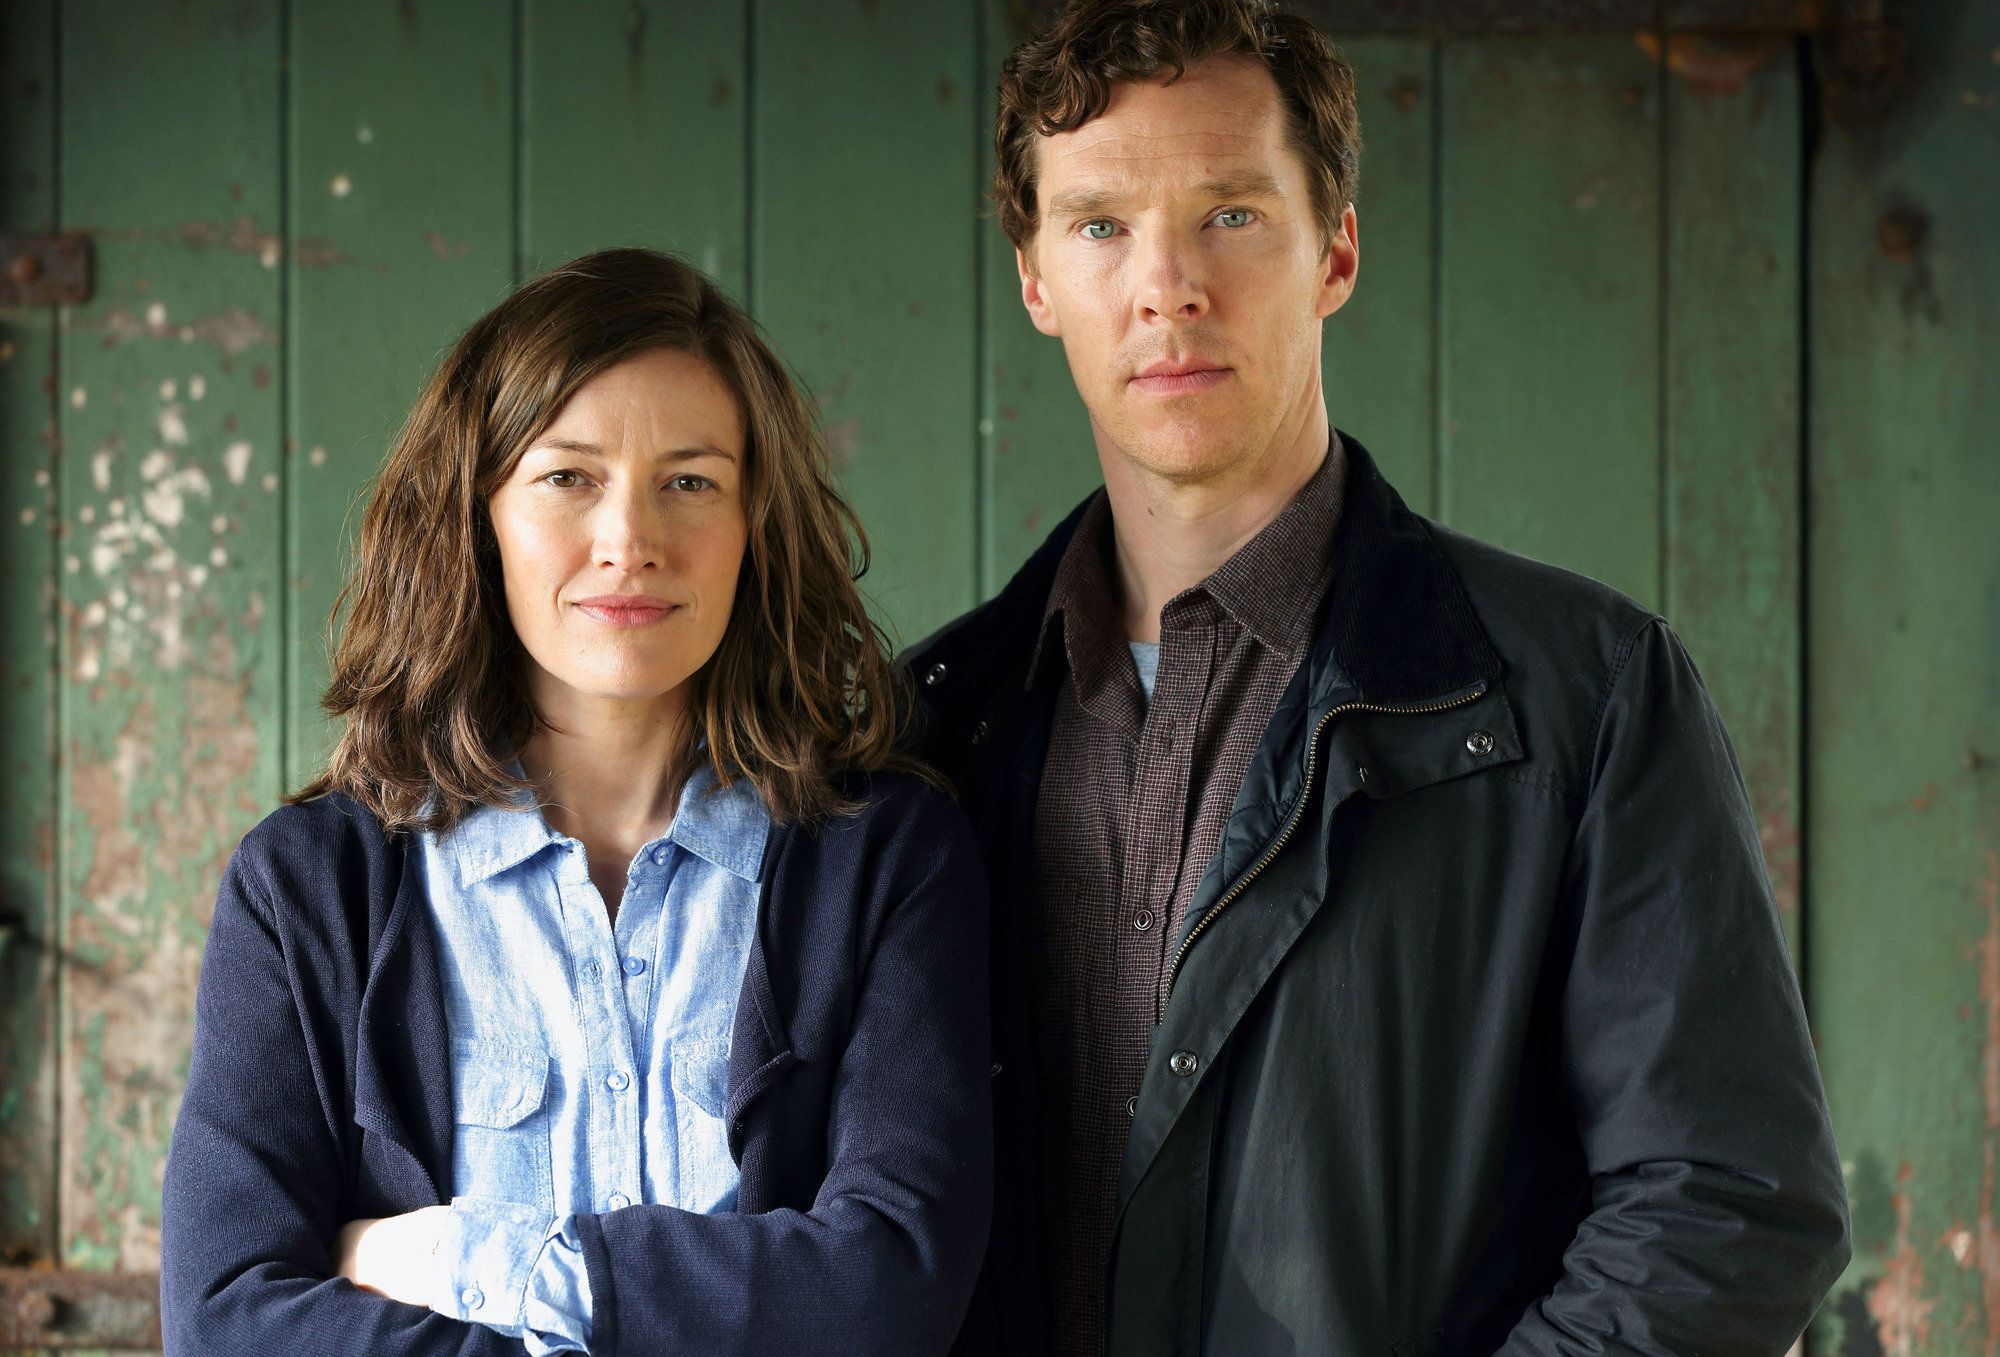 Benedict Cumberbatch's Latest Drama Leaves Viewers Baffled With 'Confusing And Boring'